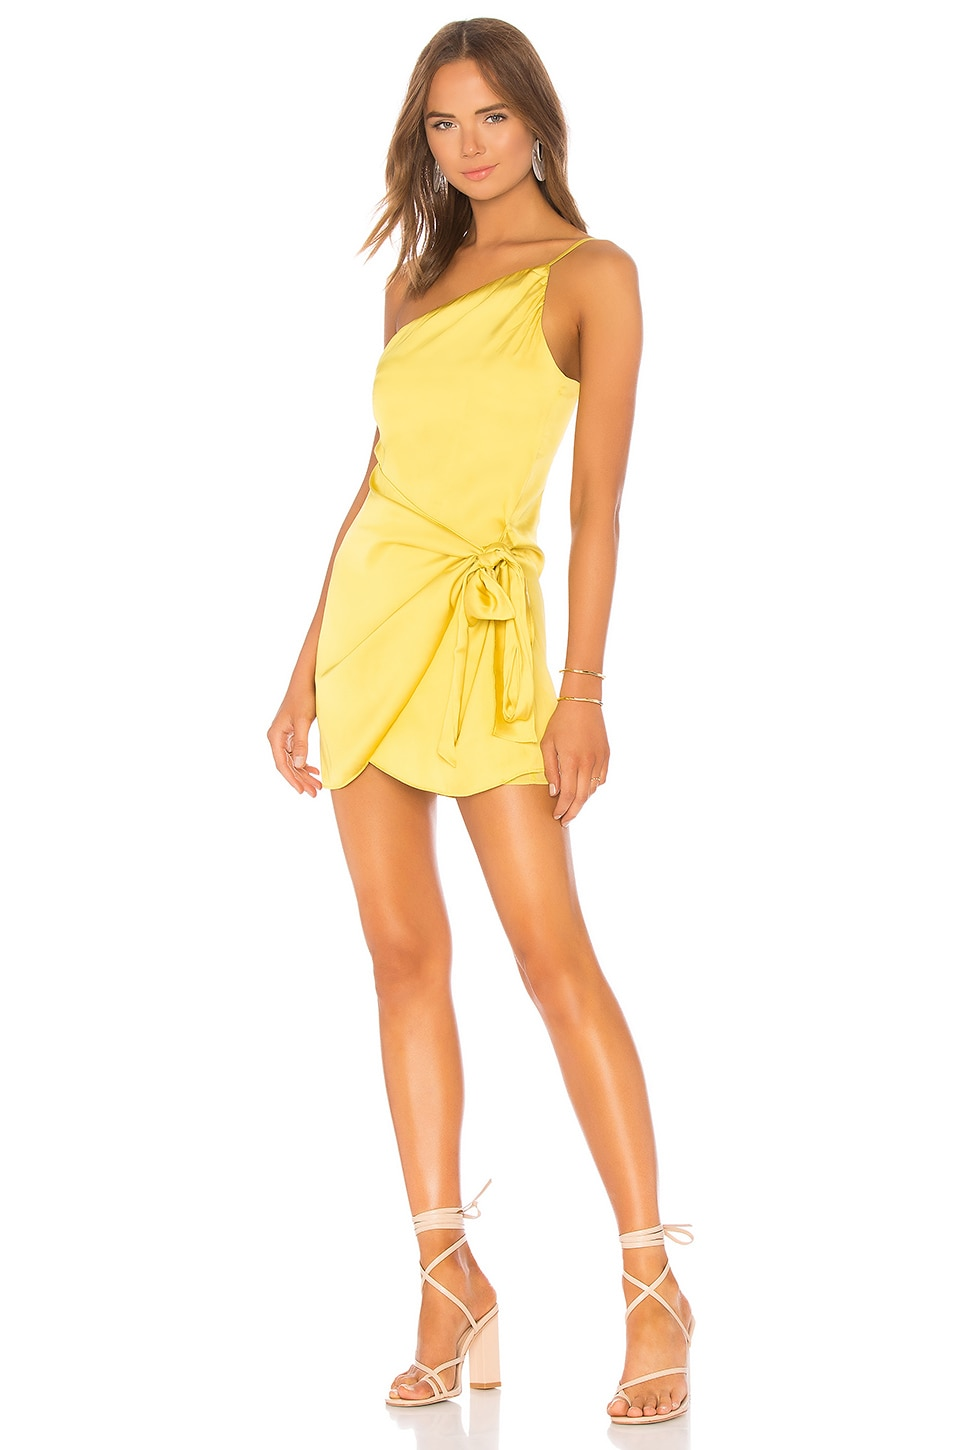 Lovers + Friends Karen Mini Dress in Chartreuse Green